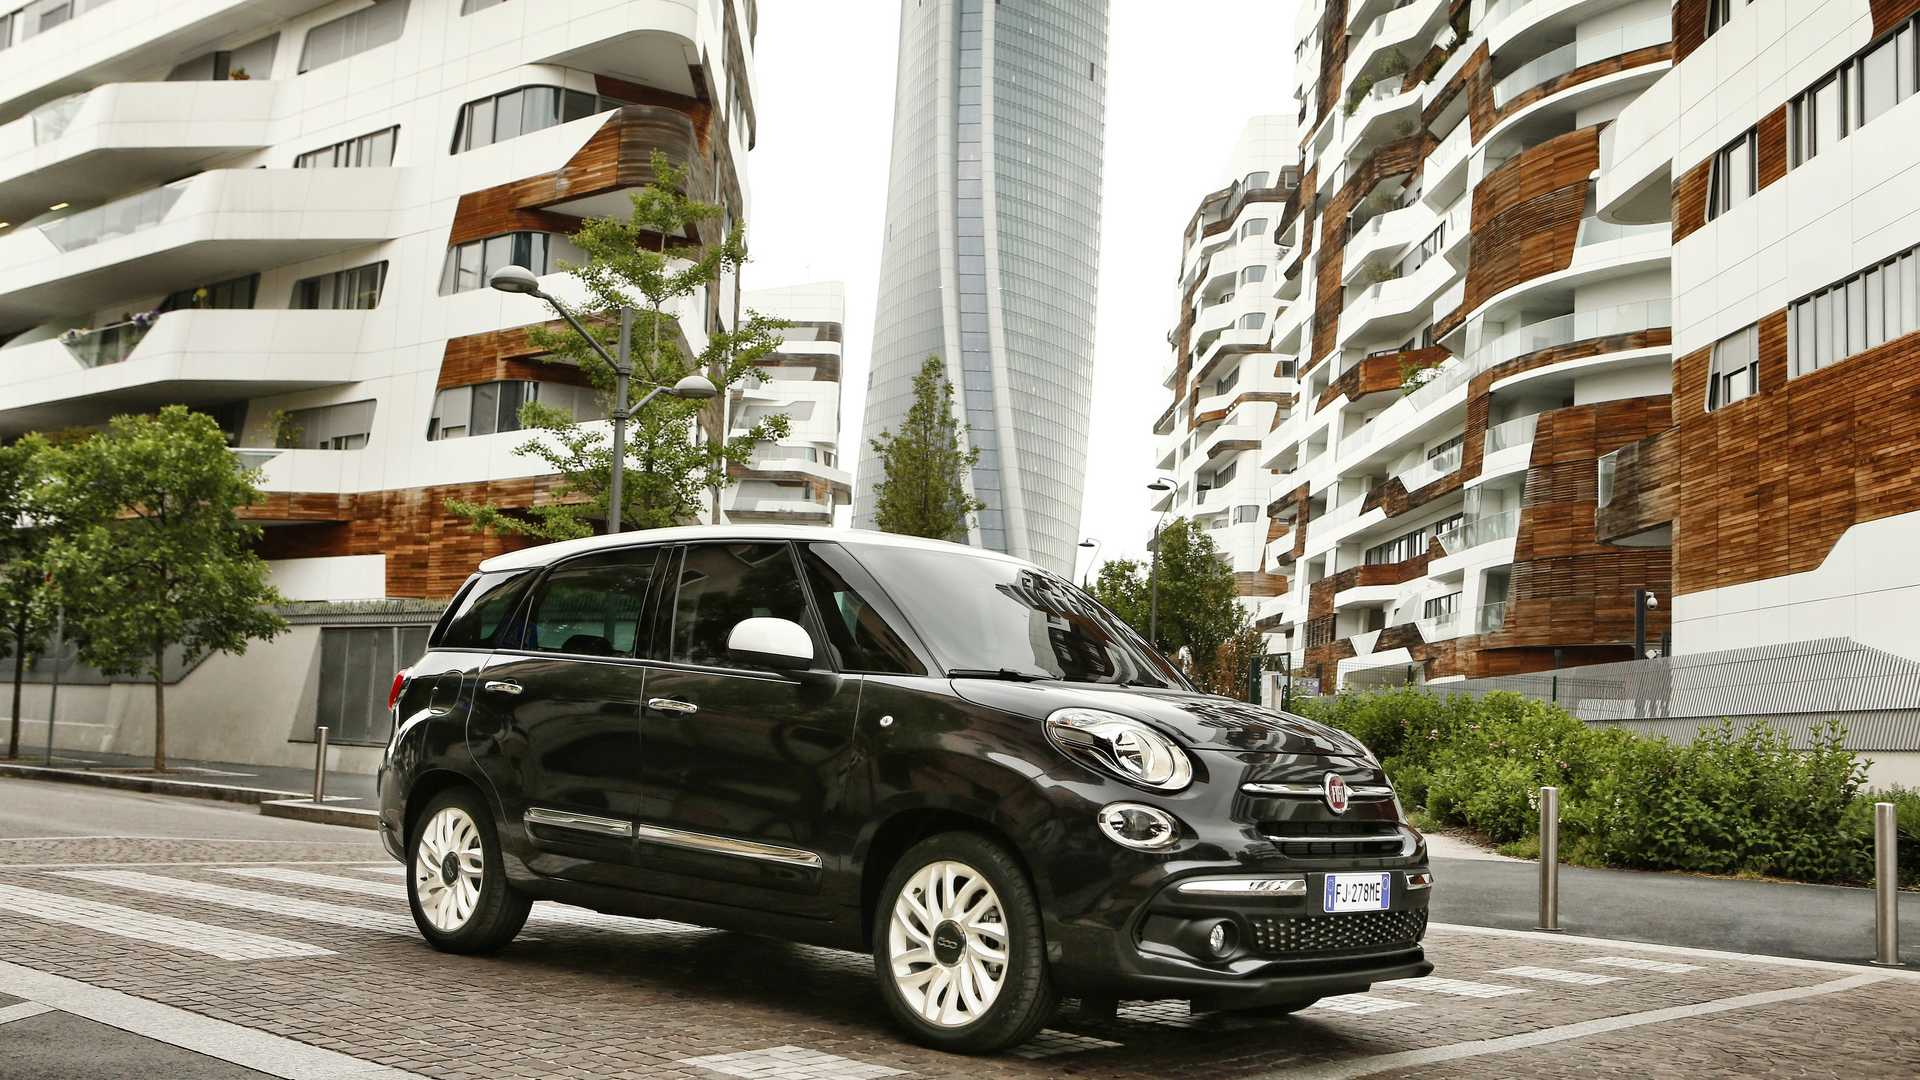 2018_Fiat_500L_wagon_facelift_04